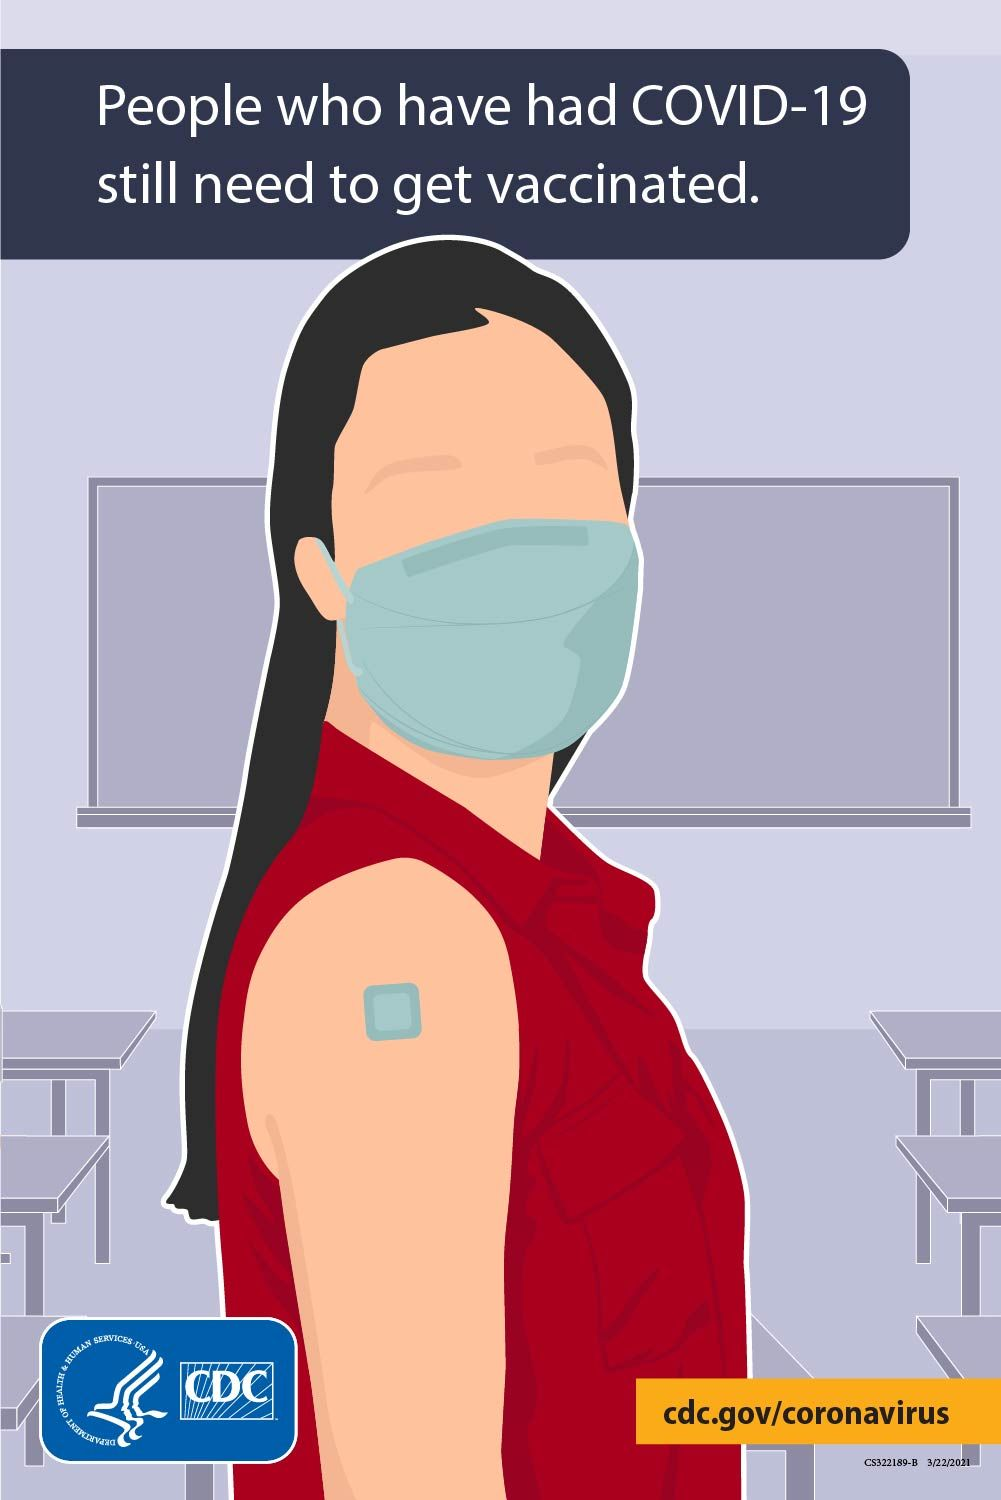 Vaxfact You Should Get A Covid19 Vaccine Even If You Ve Already Had Covid 19 Experts Don T Know How Long You Re Protected From Covid 19 After You Recover I